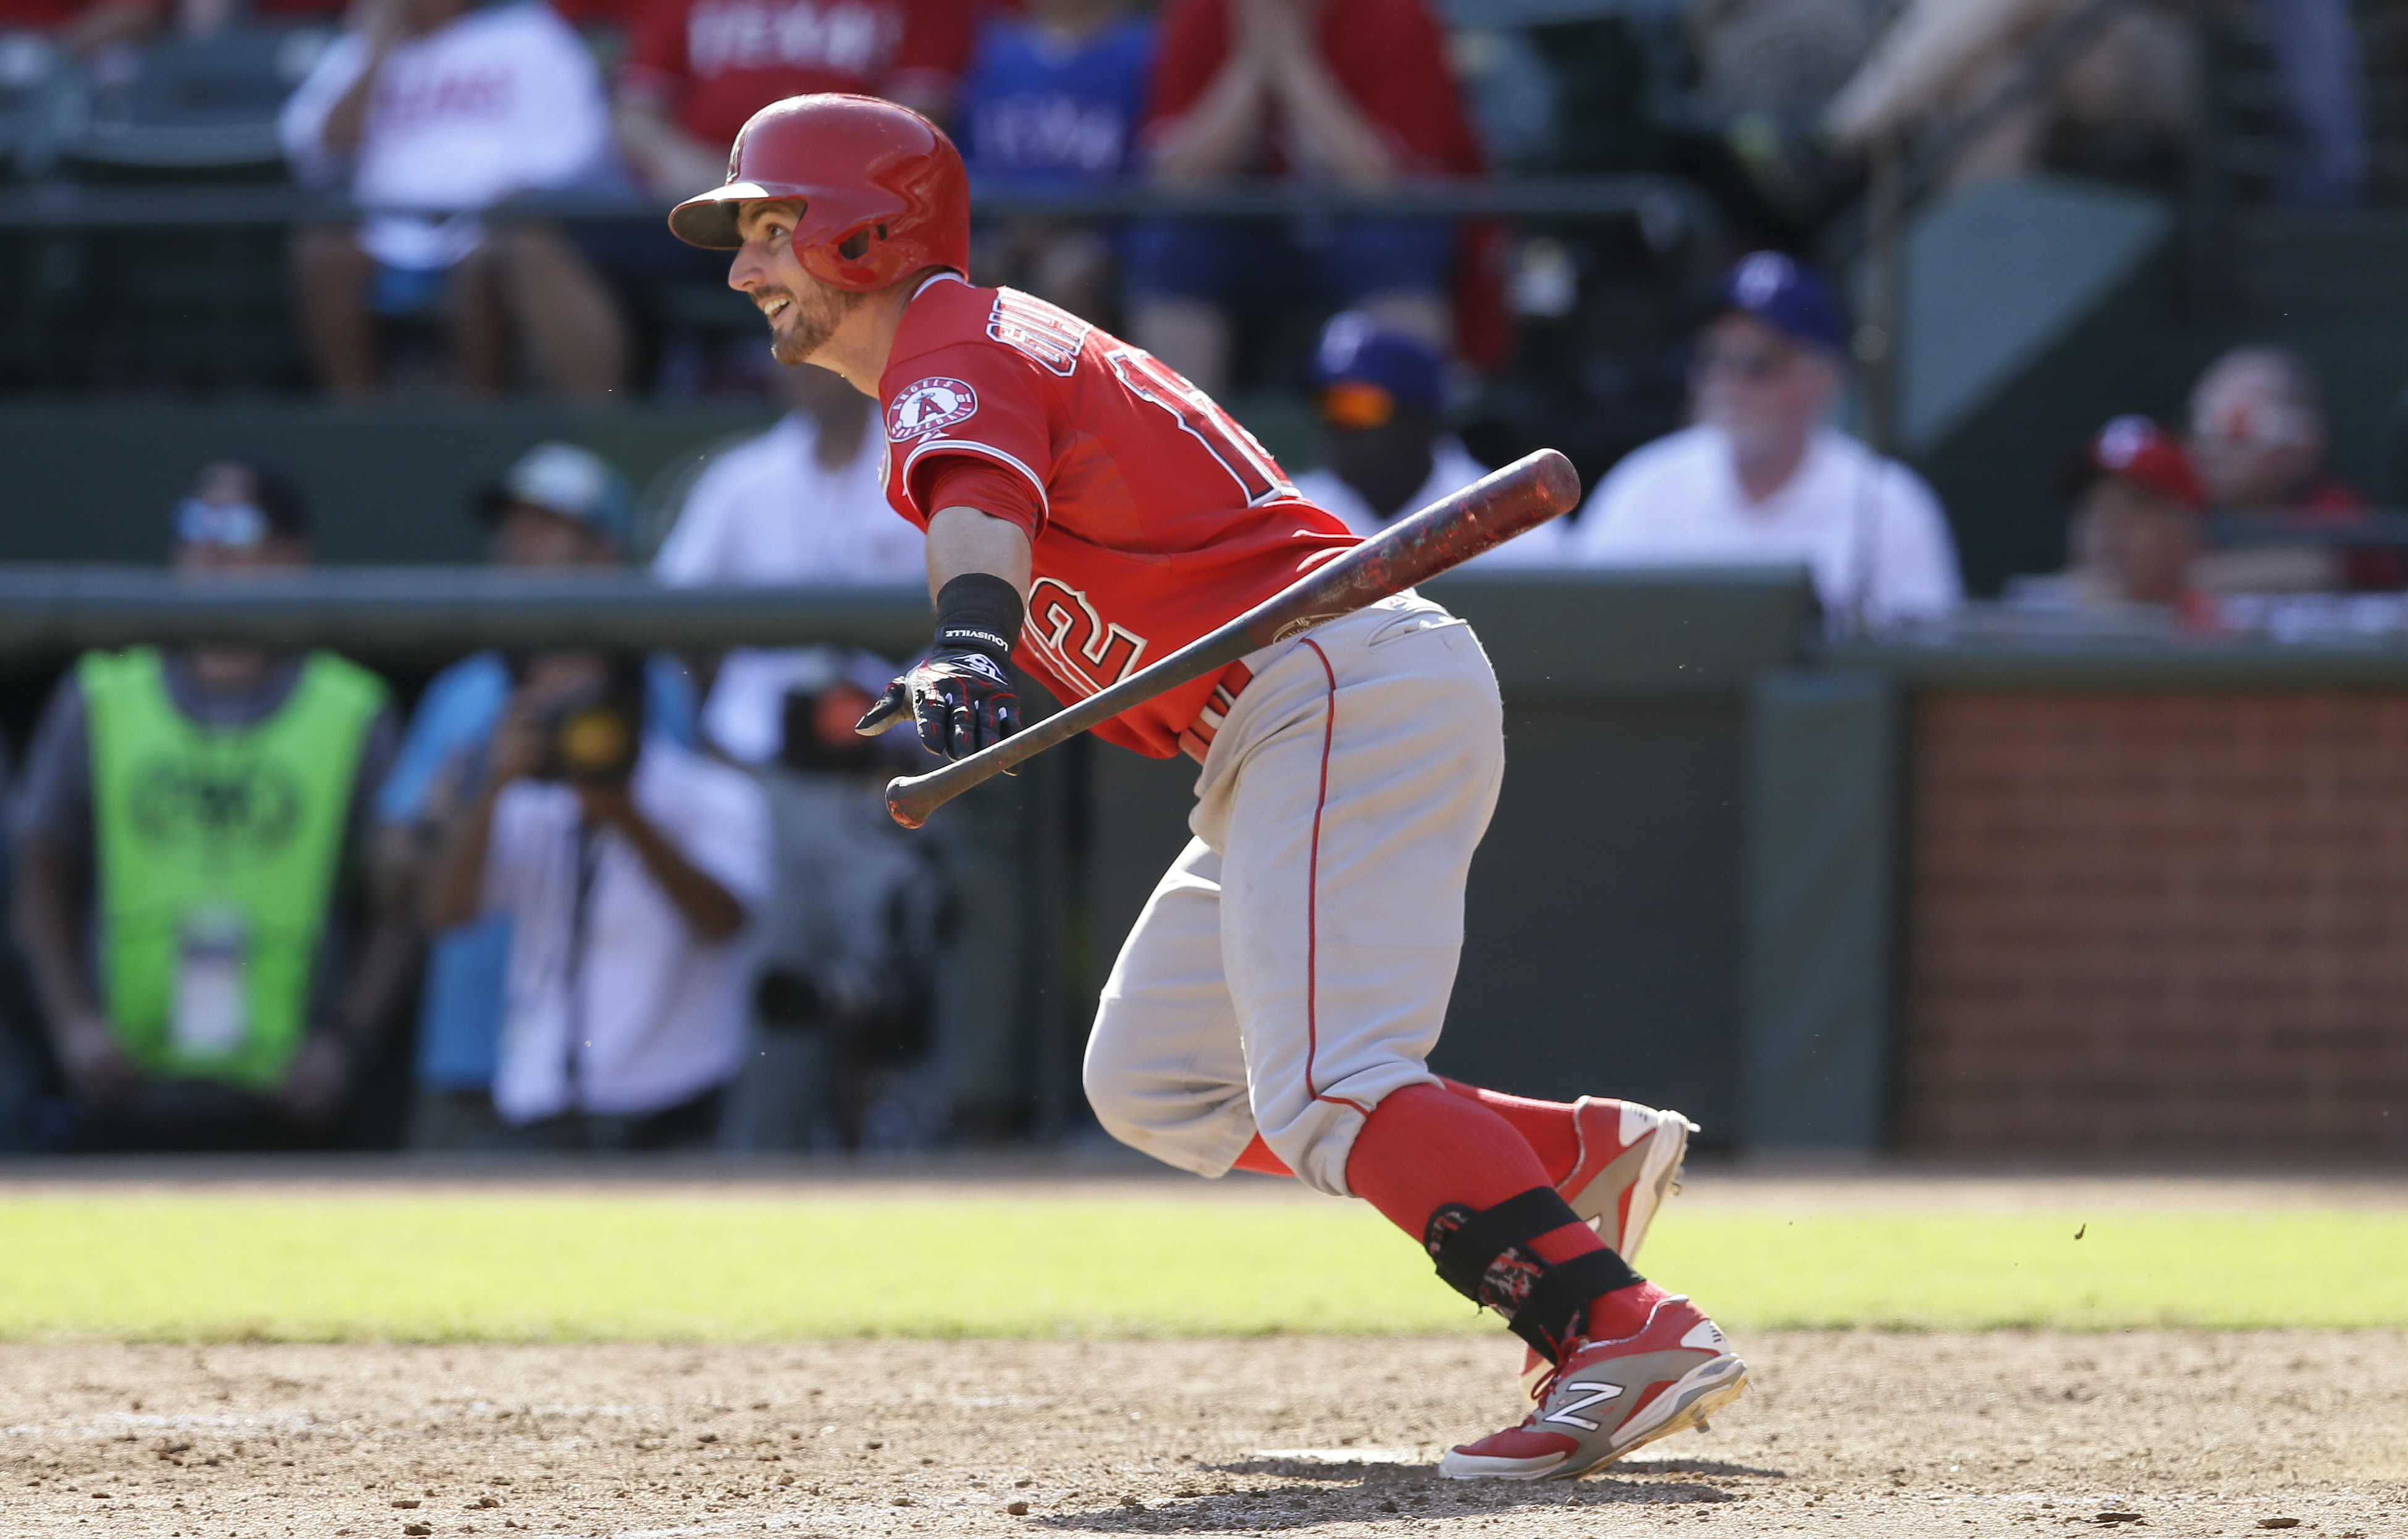 Los Angeles Angels' Johnny Giavotella watches his RBI single that scored teammate Drew Stubbs in the ninth inning of a baseball game against the Texas Rangers in Arlington, Texas, Saturday, Oct. 3, 2015. The Angels won 11-10. (AP Photo/LM Otero)